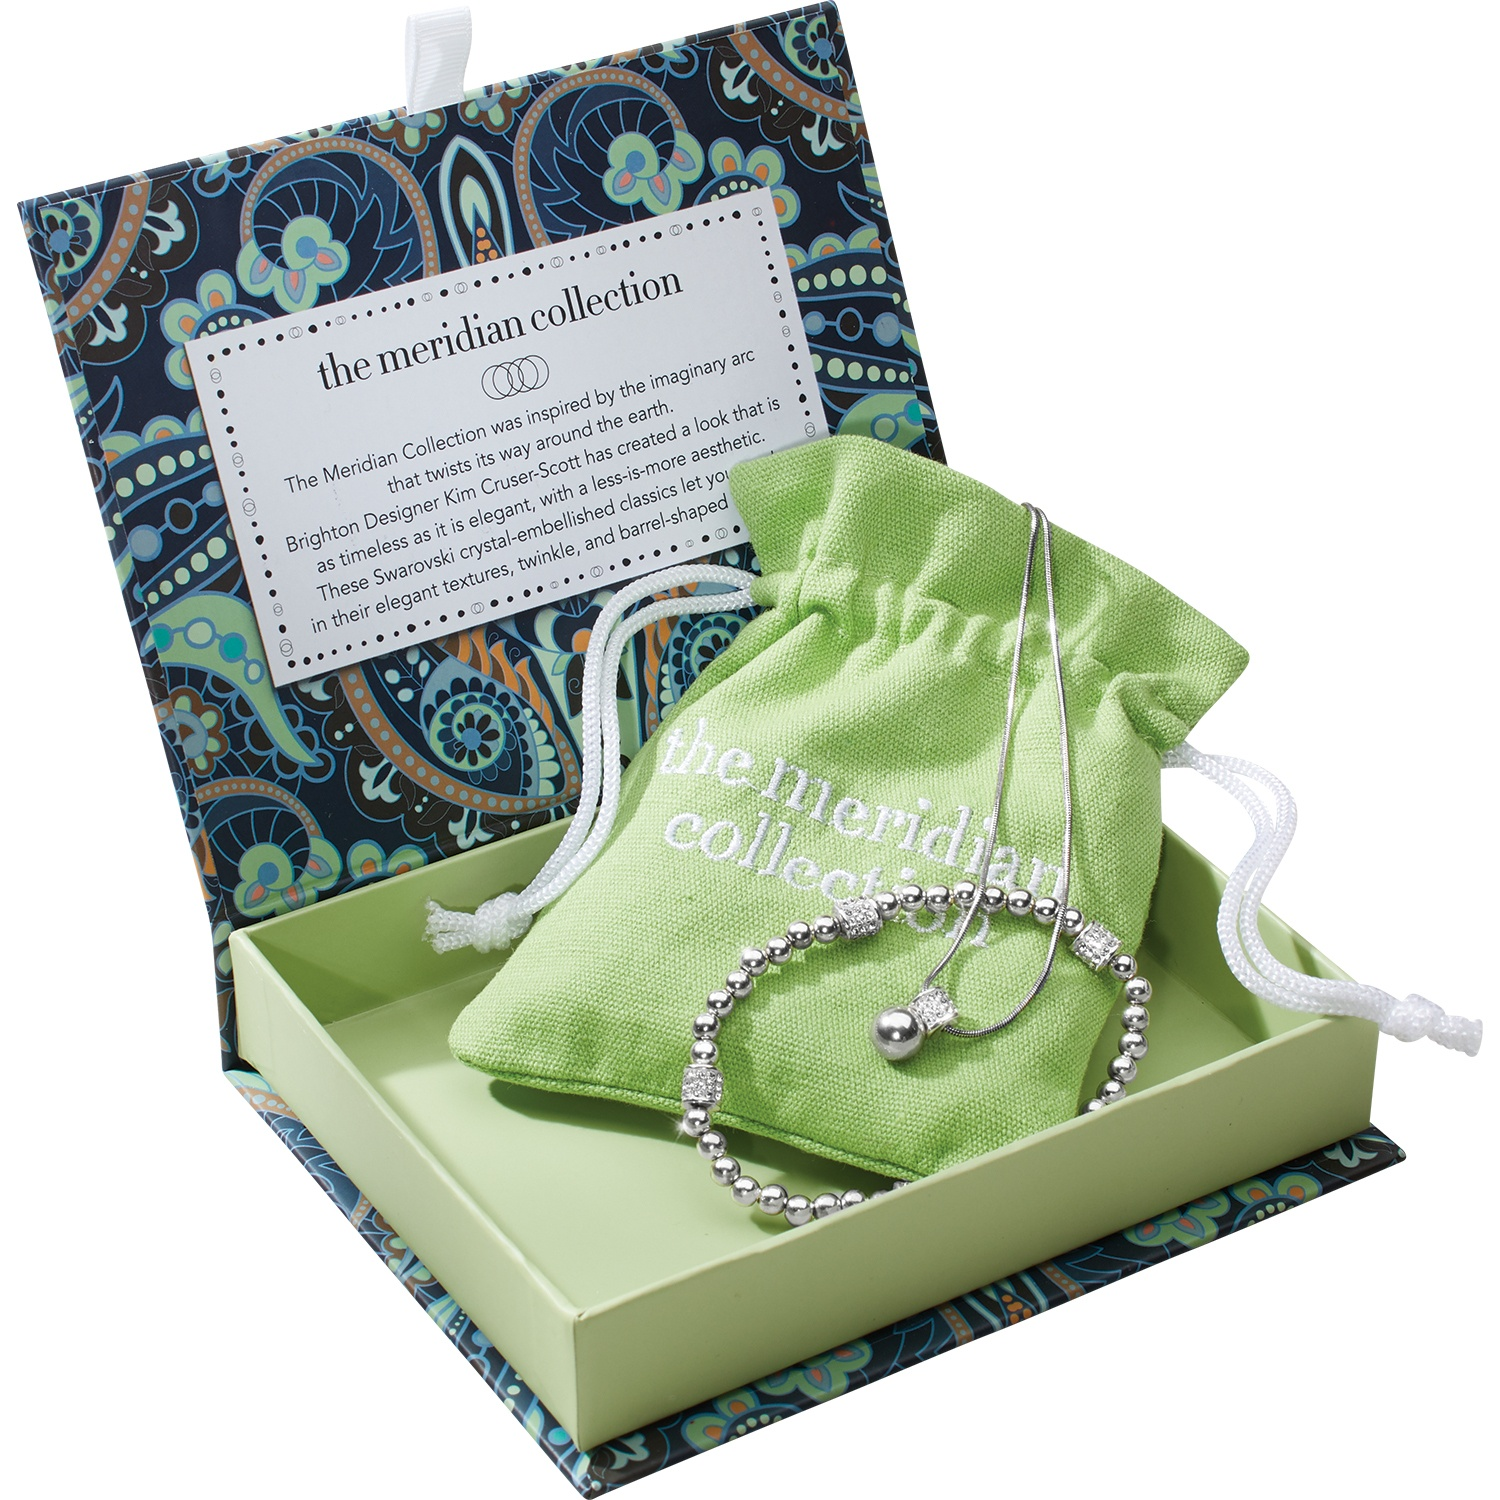 Gifts From The Heart In All The World - Meridian Collection Box Sets | Tuggl